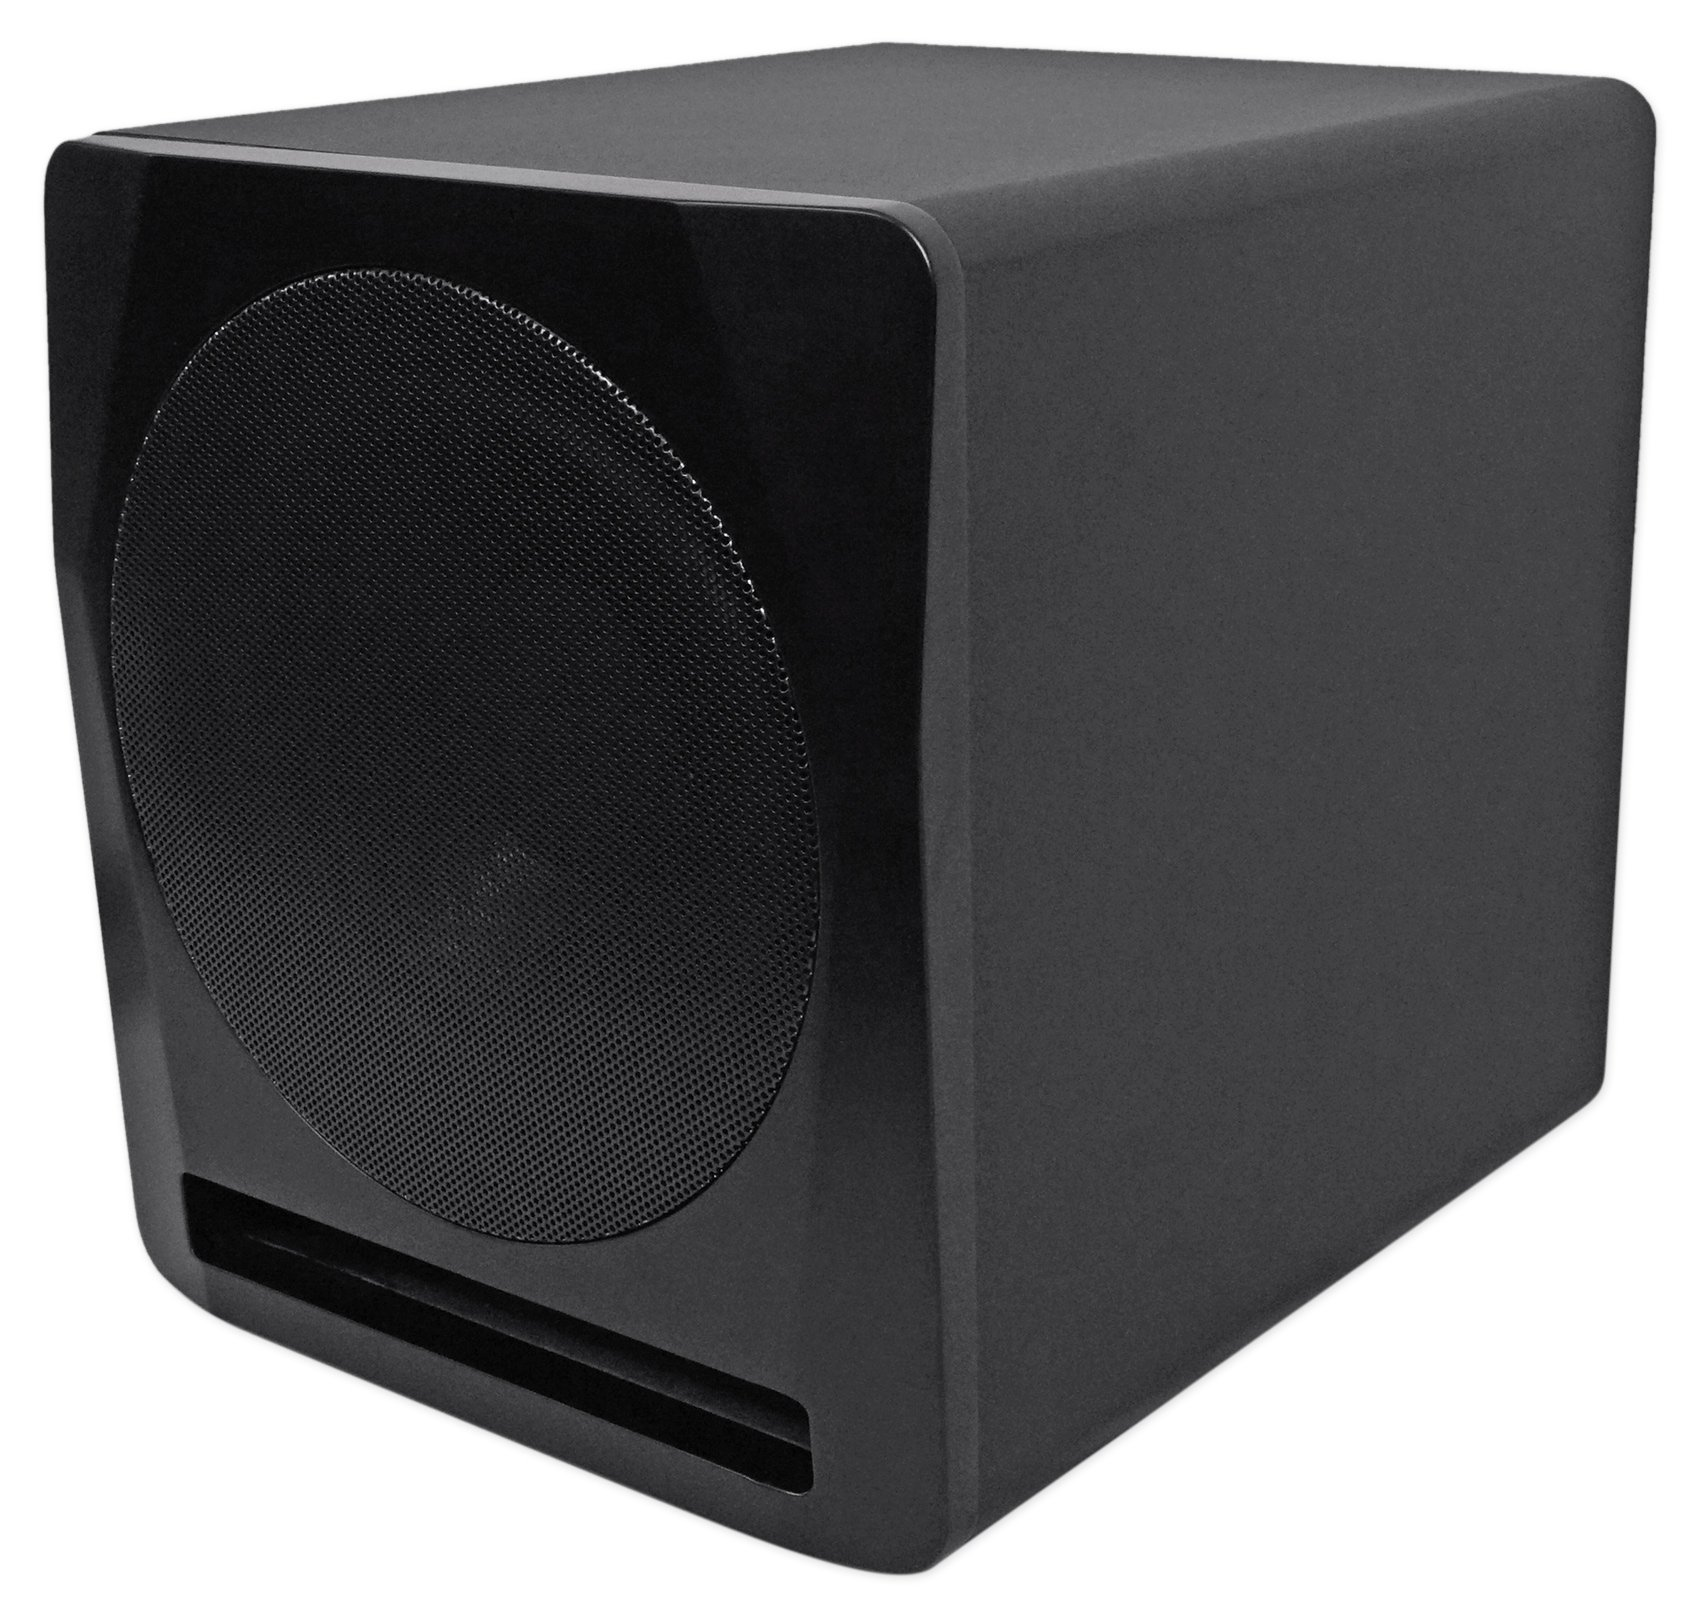 Rockville Apm10b 10'' 400W Powered/Active Studio Subwoofer Pro Reference Sub